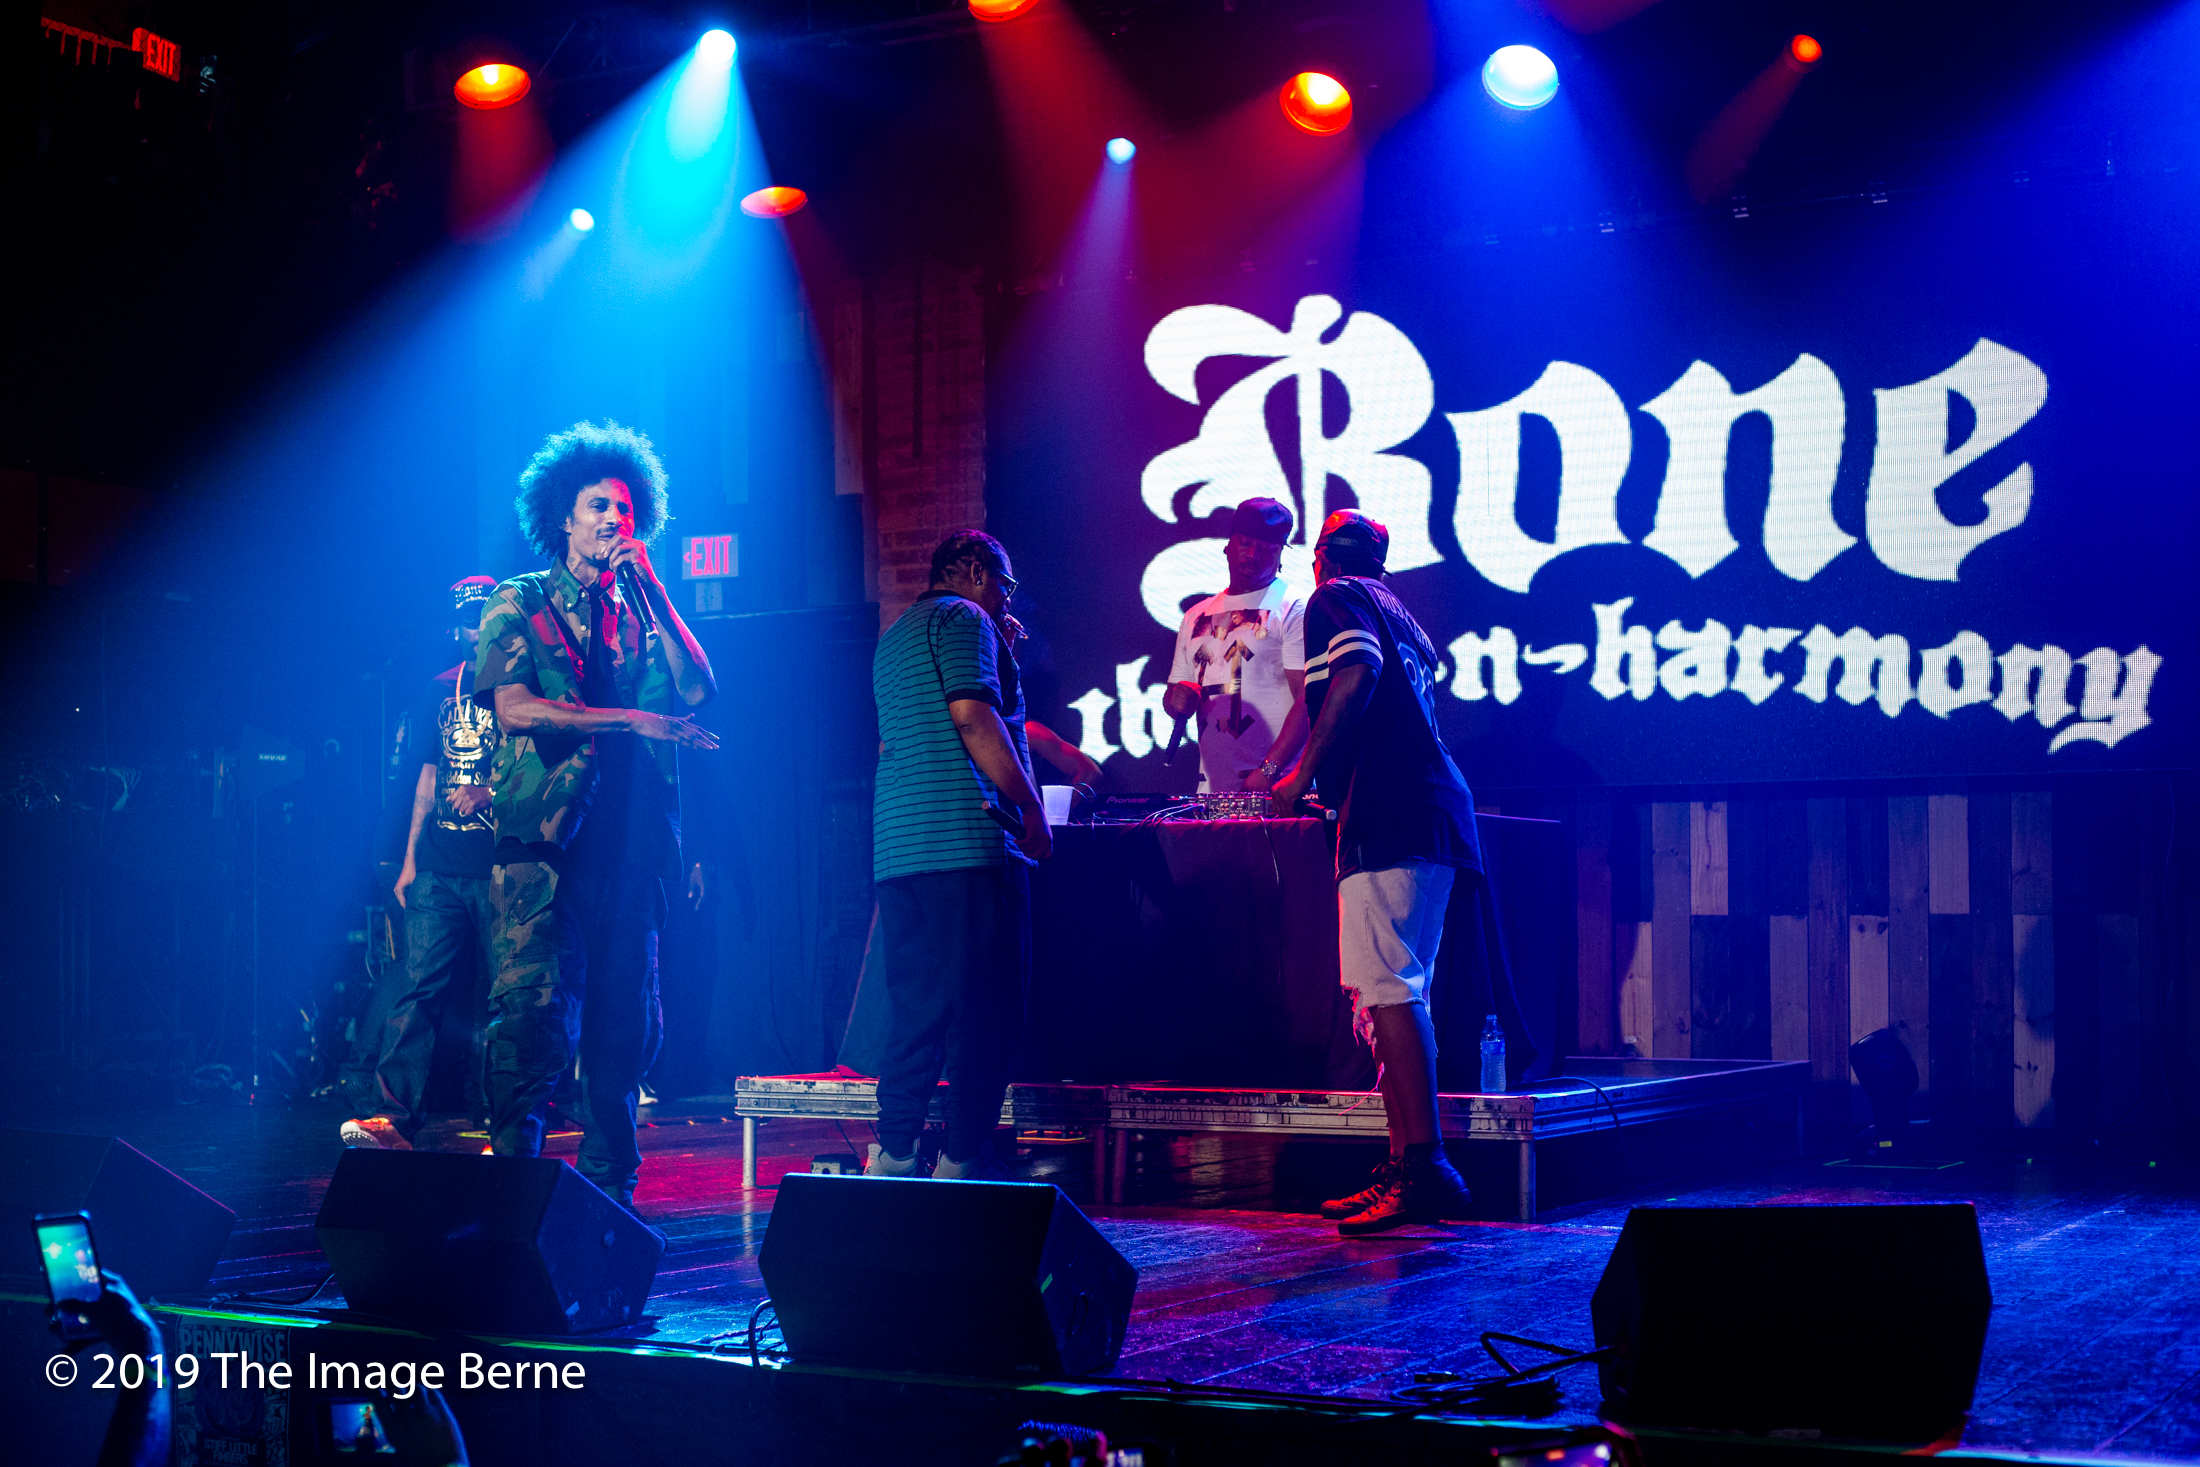 Krayzie Bone, Wish Bone, Flesh-N-Bone, Layzie Bone, and Bizzy Bone-011.jpg